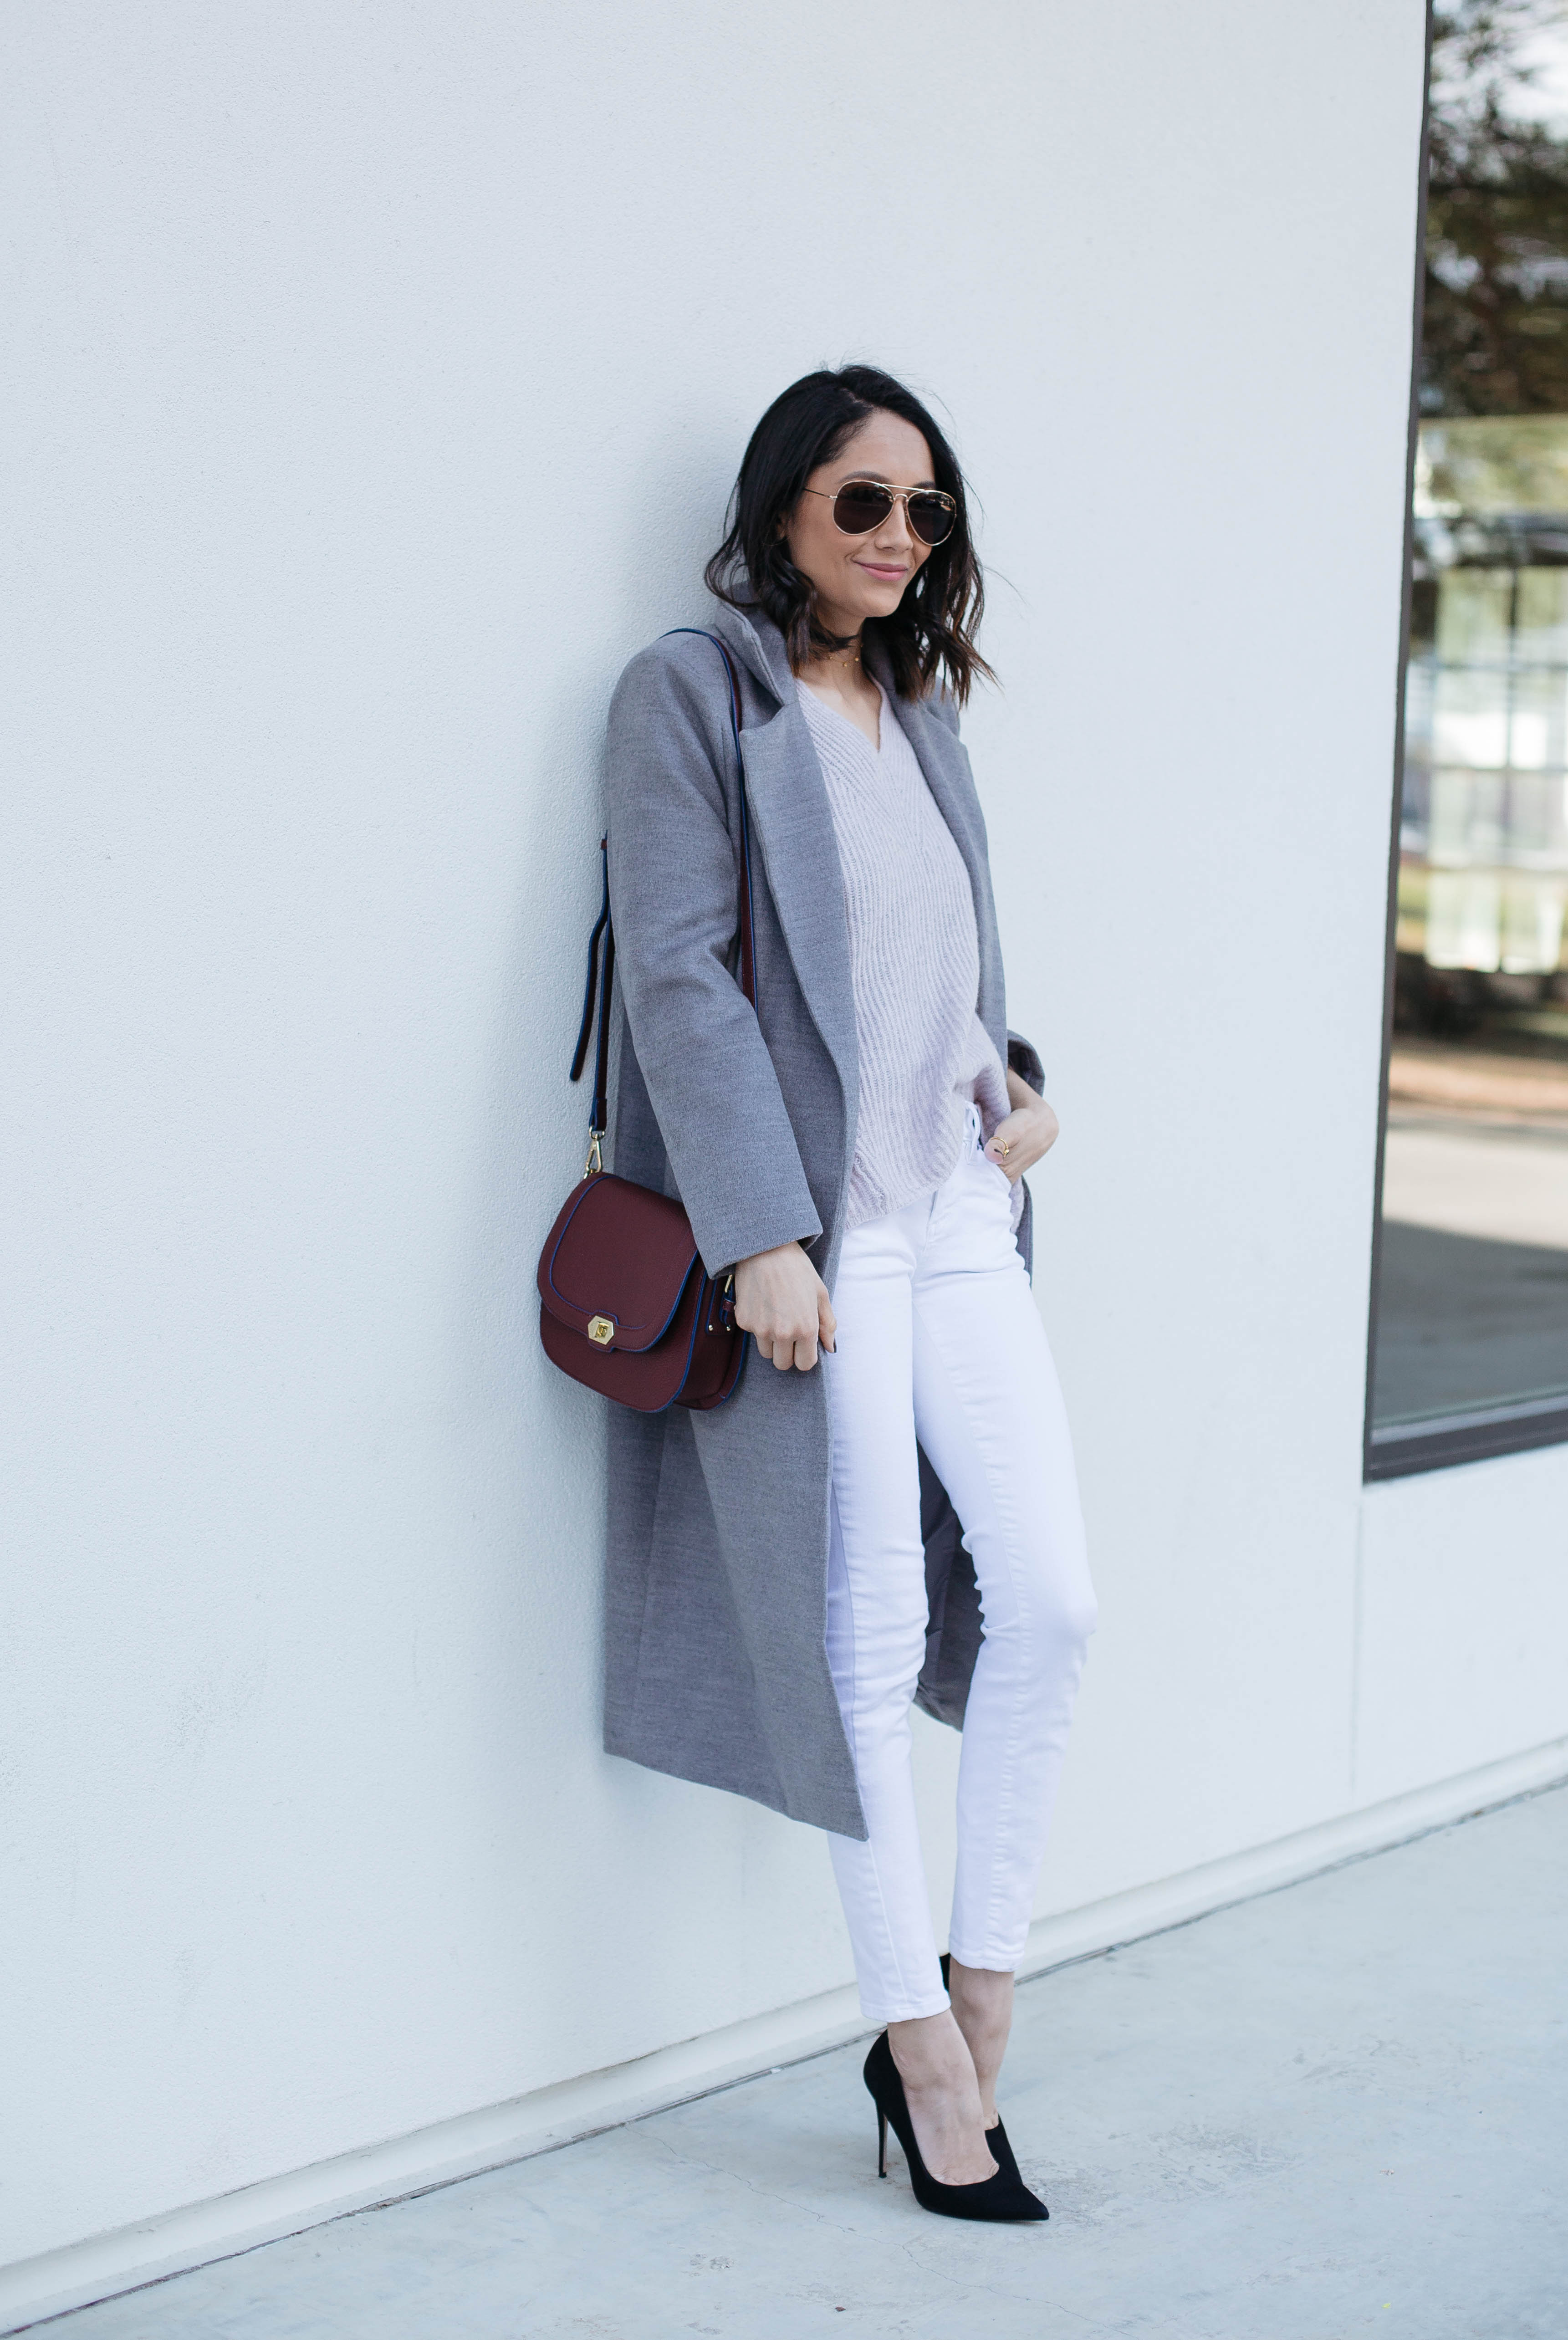 Lifestyle blogger Lilly Beltran of Daily Craving in a chic fall look with a long grey coat and white skinny jeans